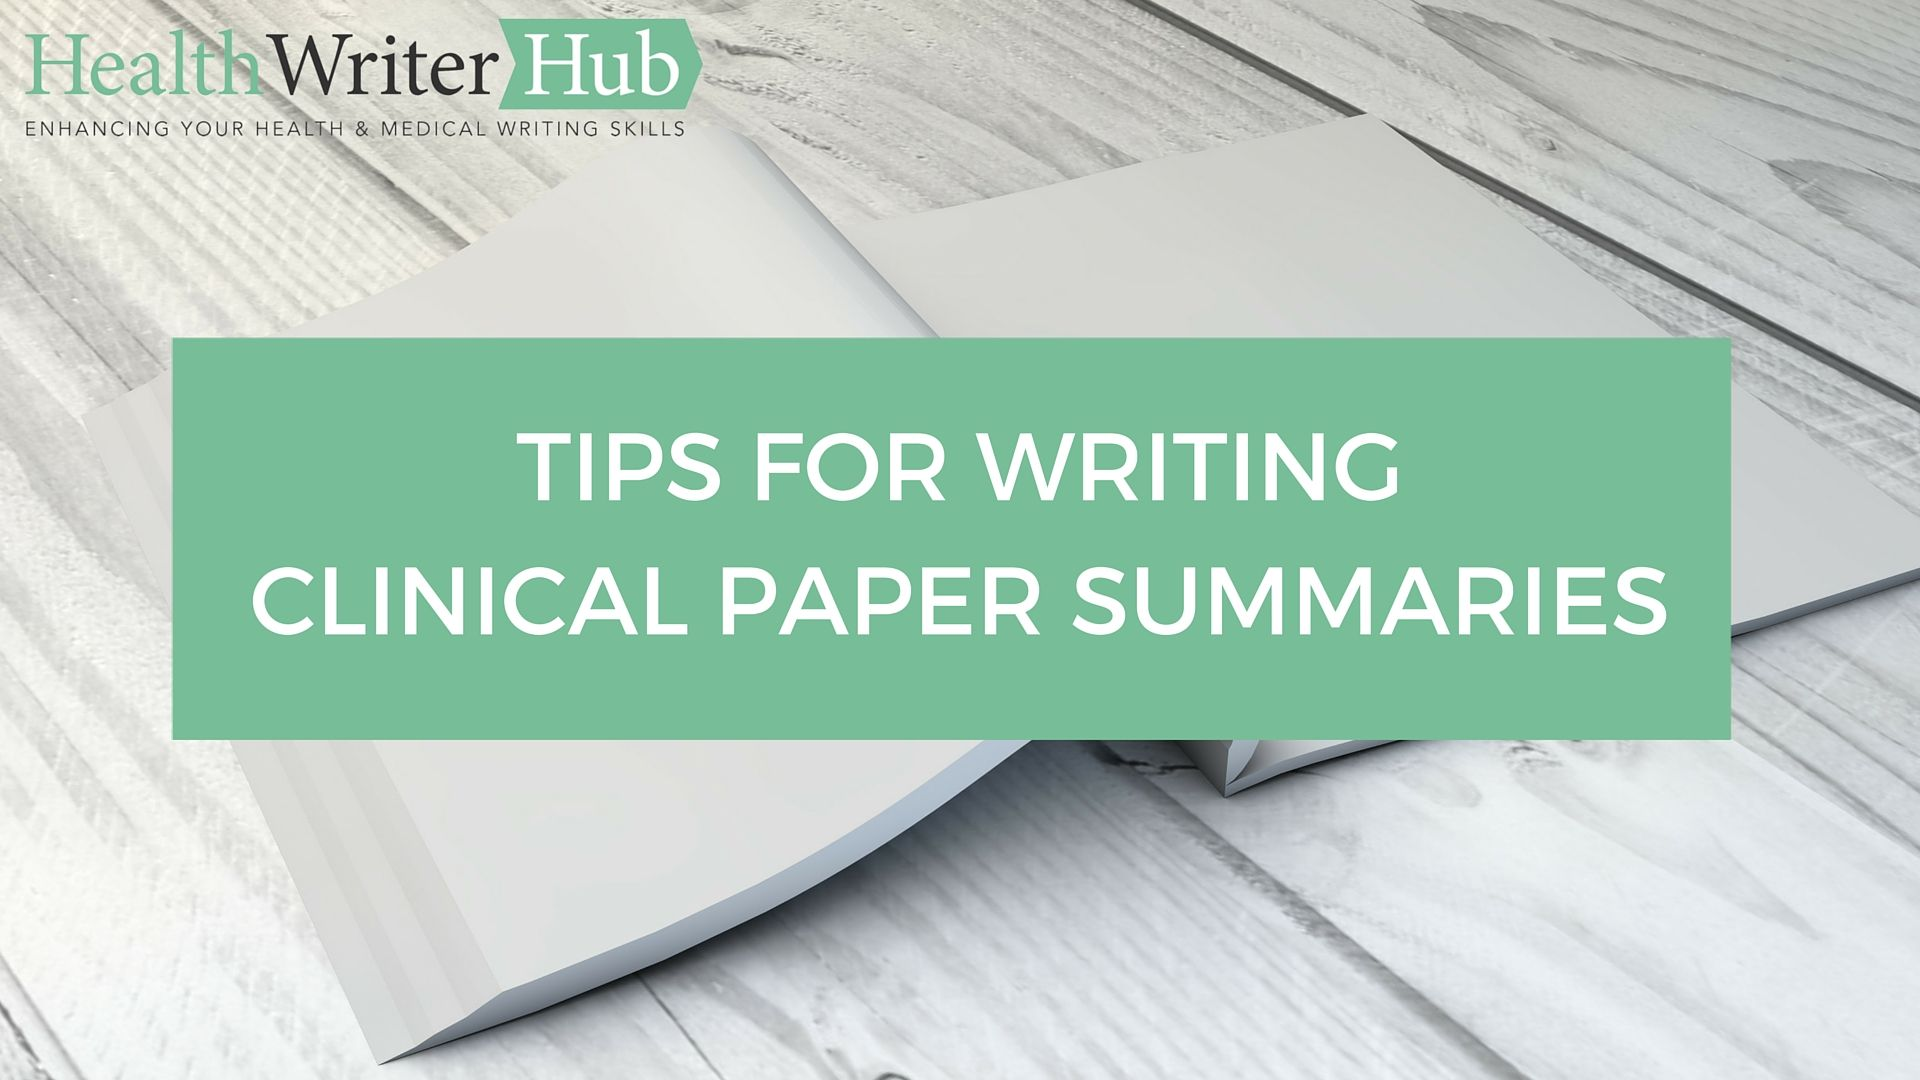 Clinical Paper Summary Writing Tips For Medical Writers